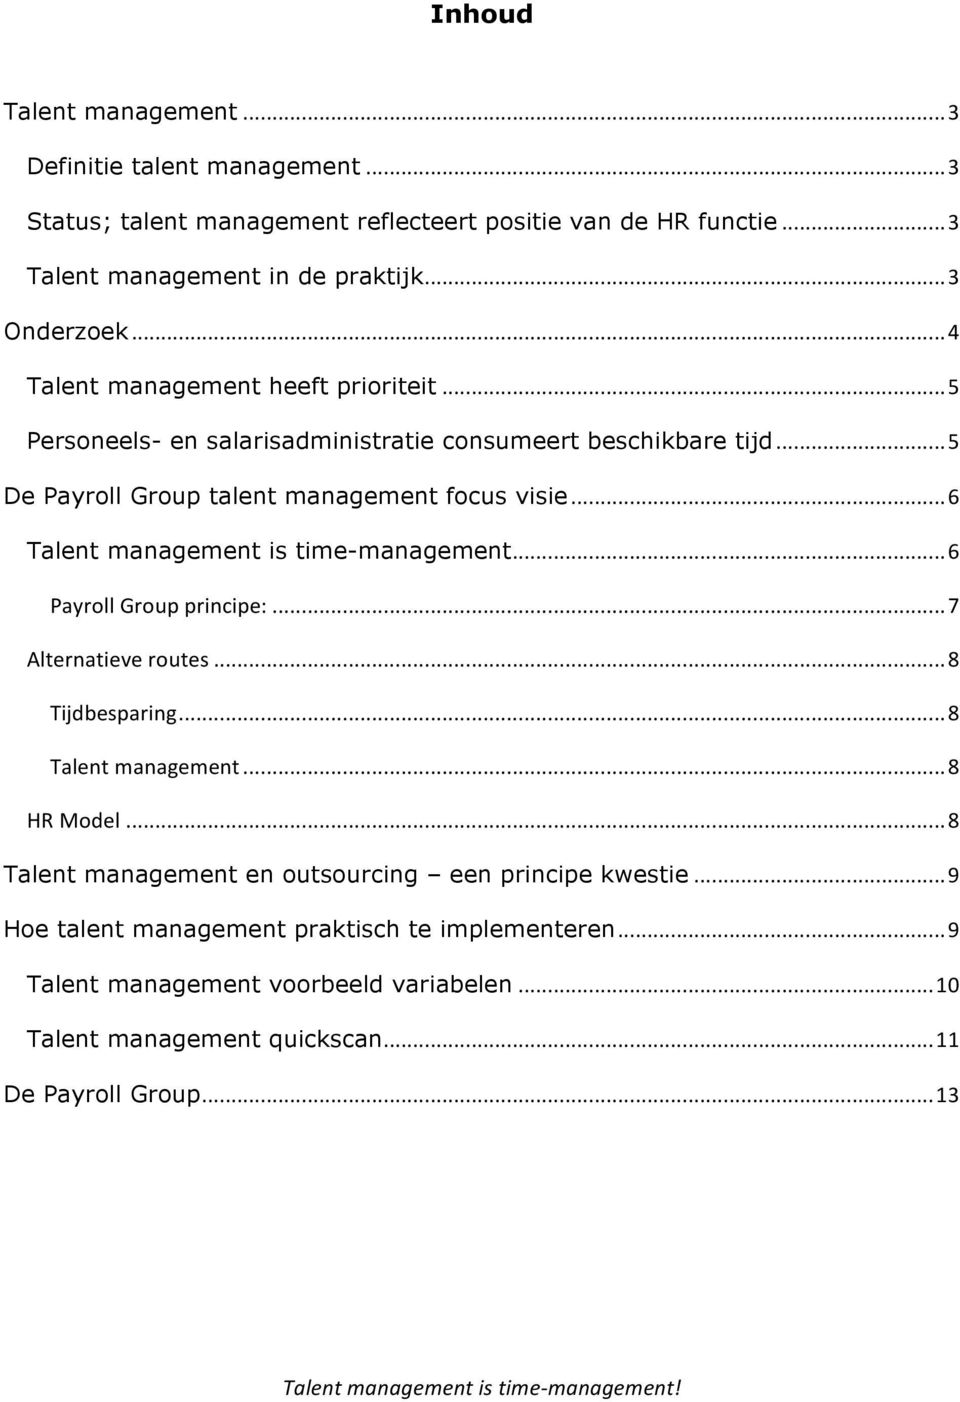 ..6 Talent management is time-management...6 Payroll Group principe:...7 Alternatieve routes...8 Tijdbesparing...8 Talent management...8 HR Model.